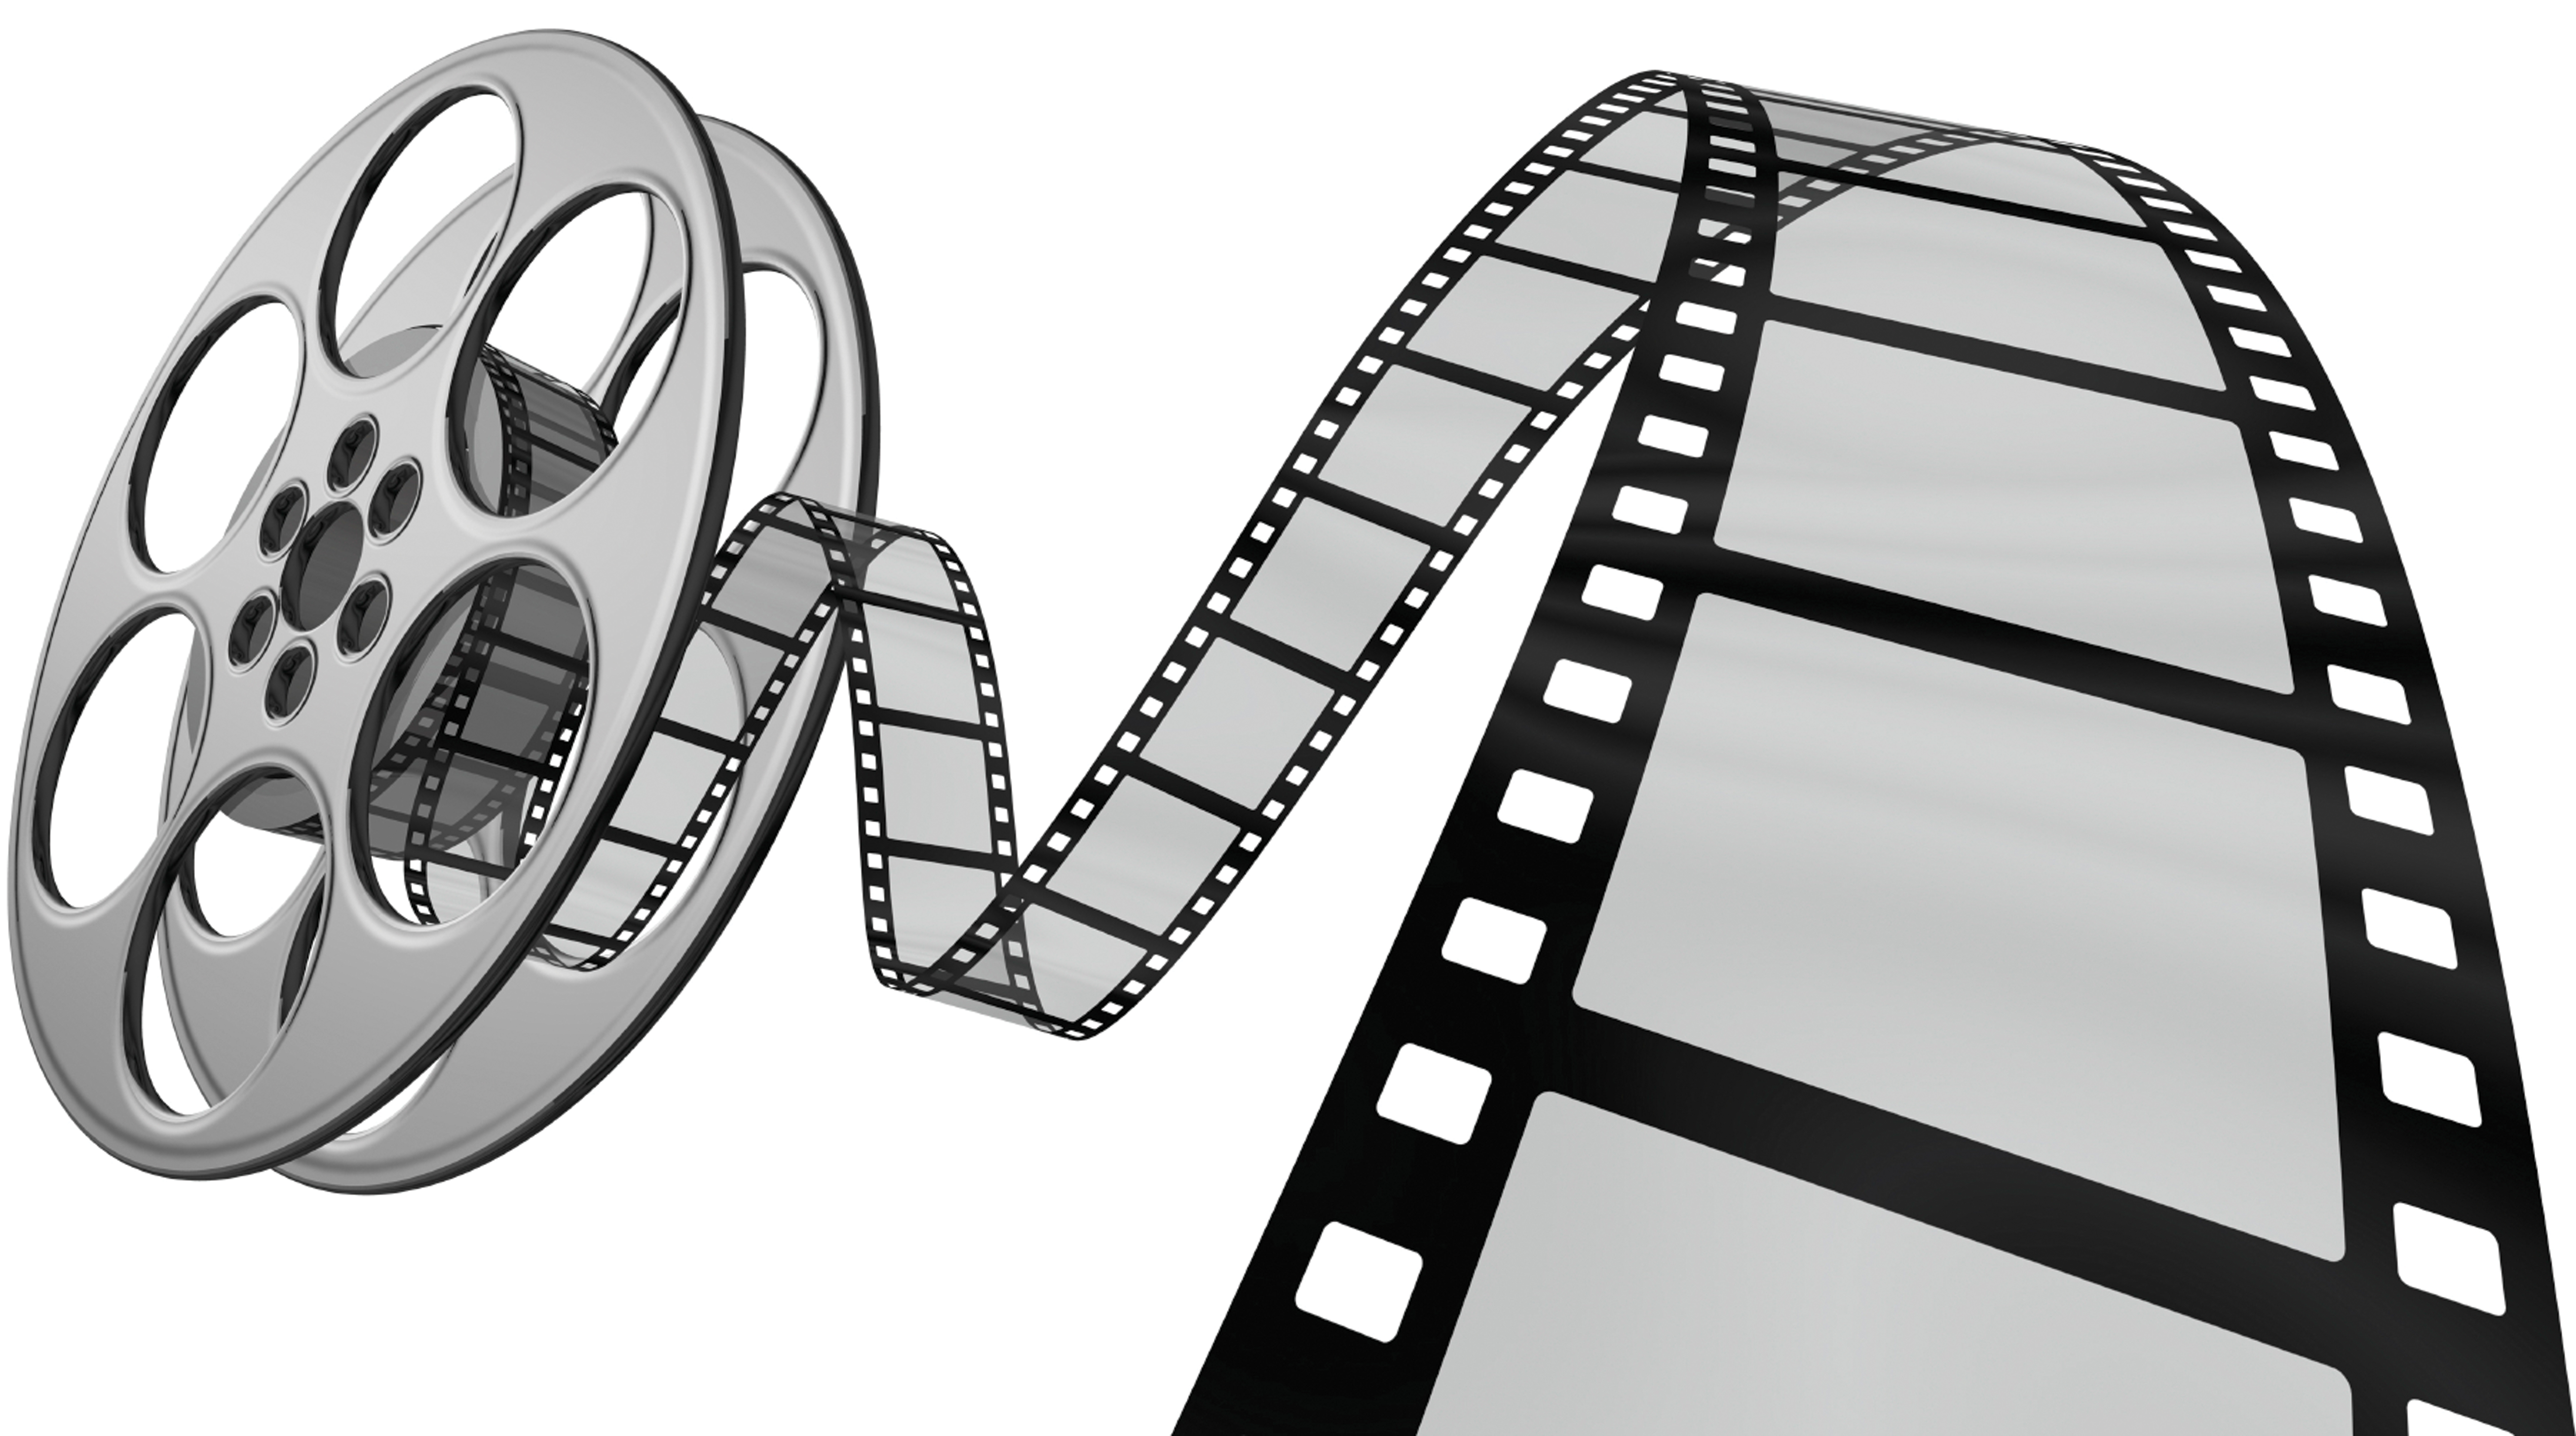 Clipartbest Com - Movie Reel Clipart